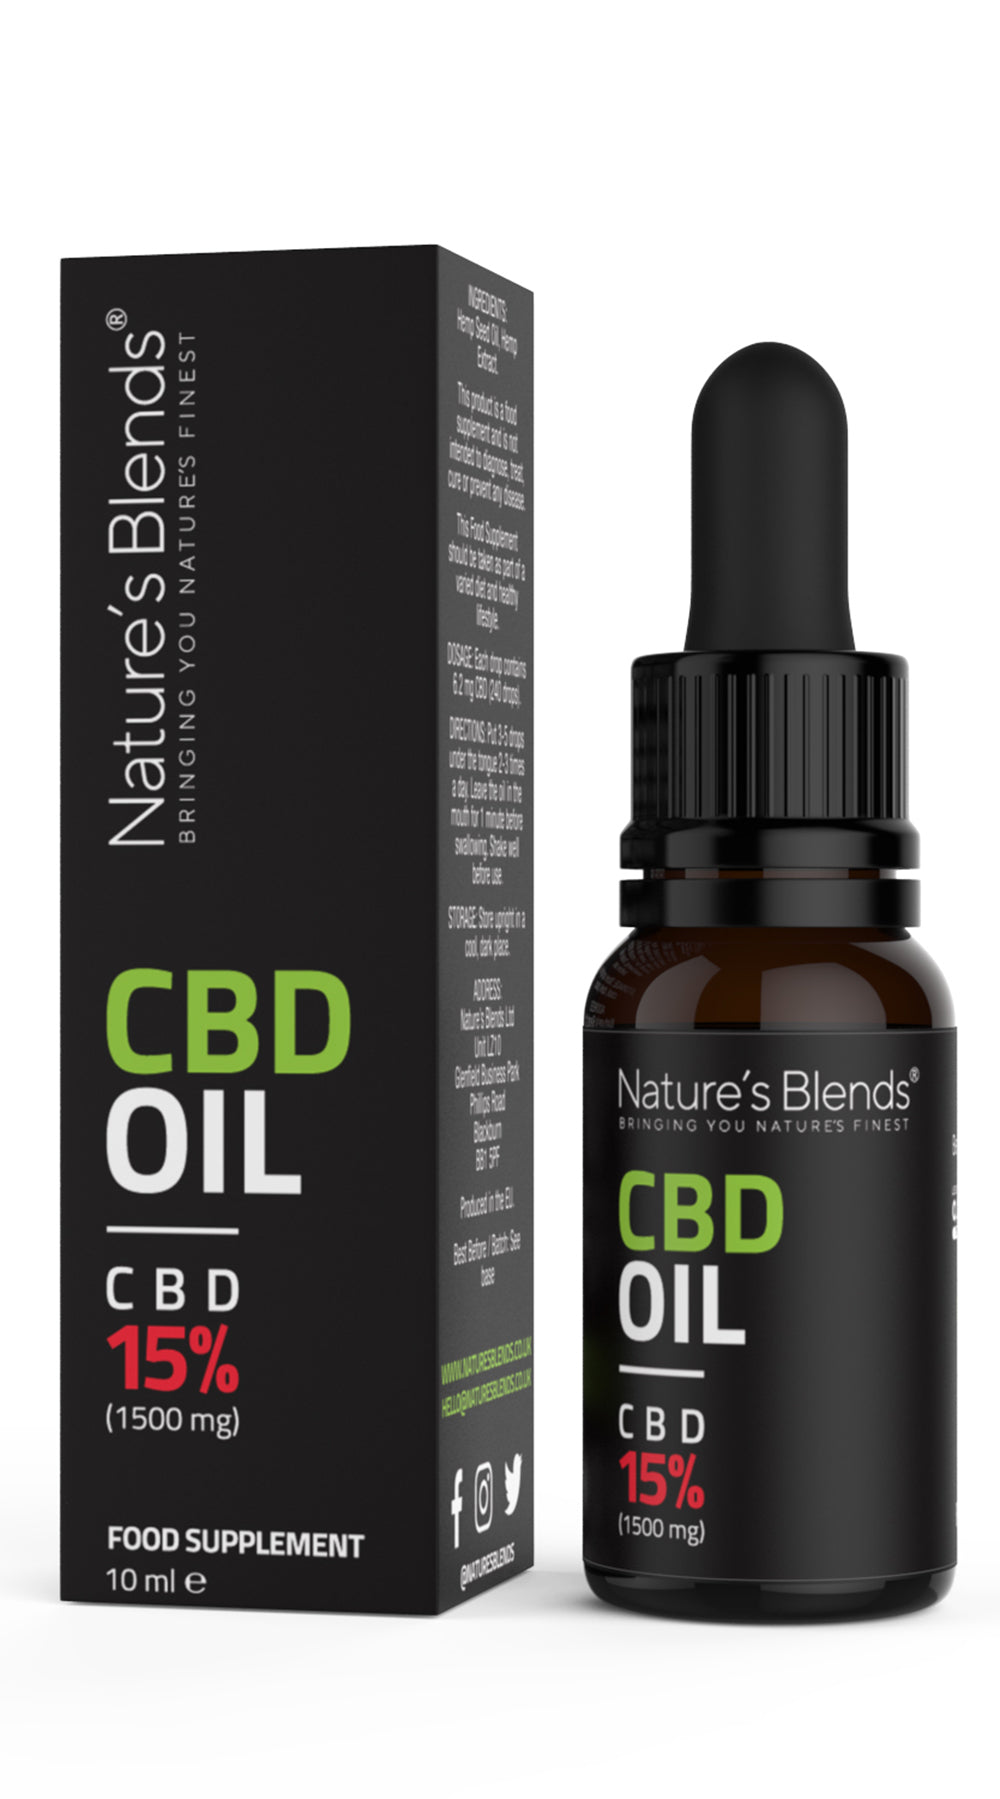 a bottle of 1500mg cbd oil along with natures blends packaging